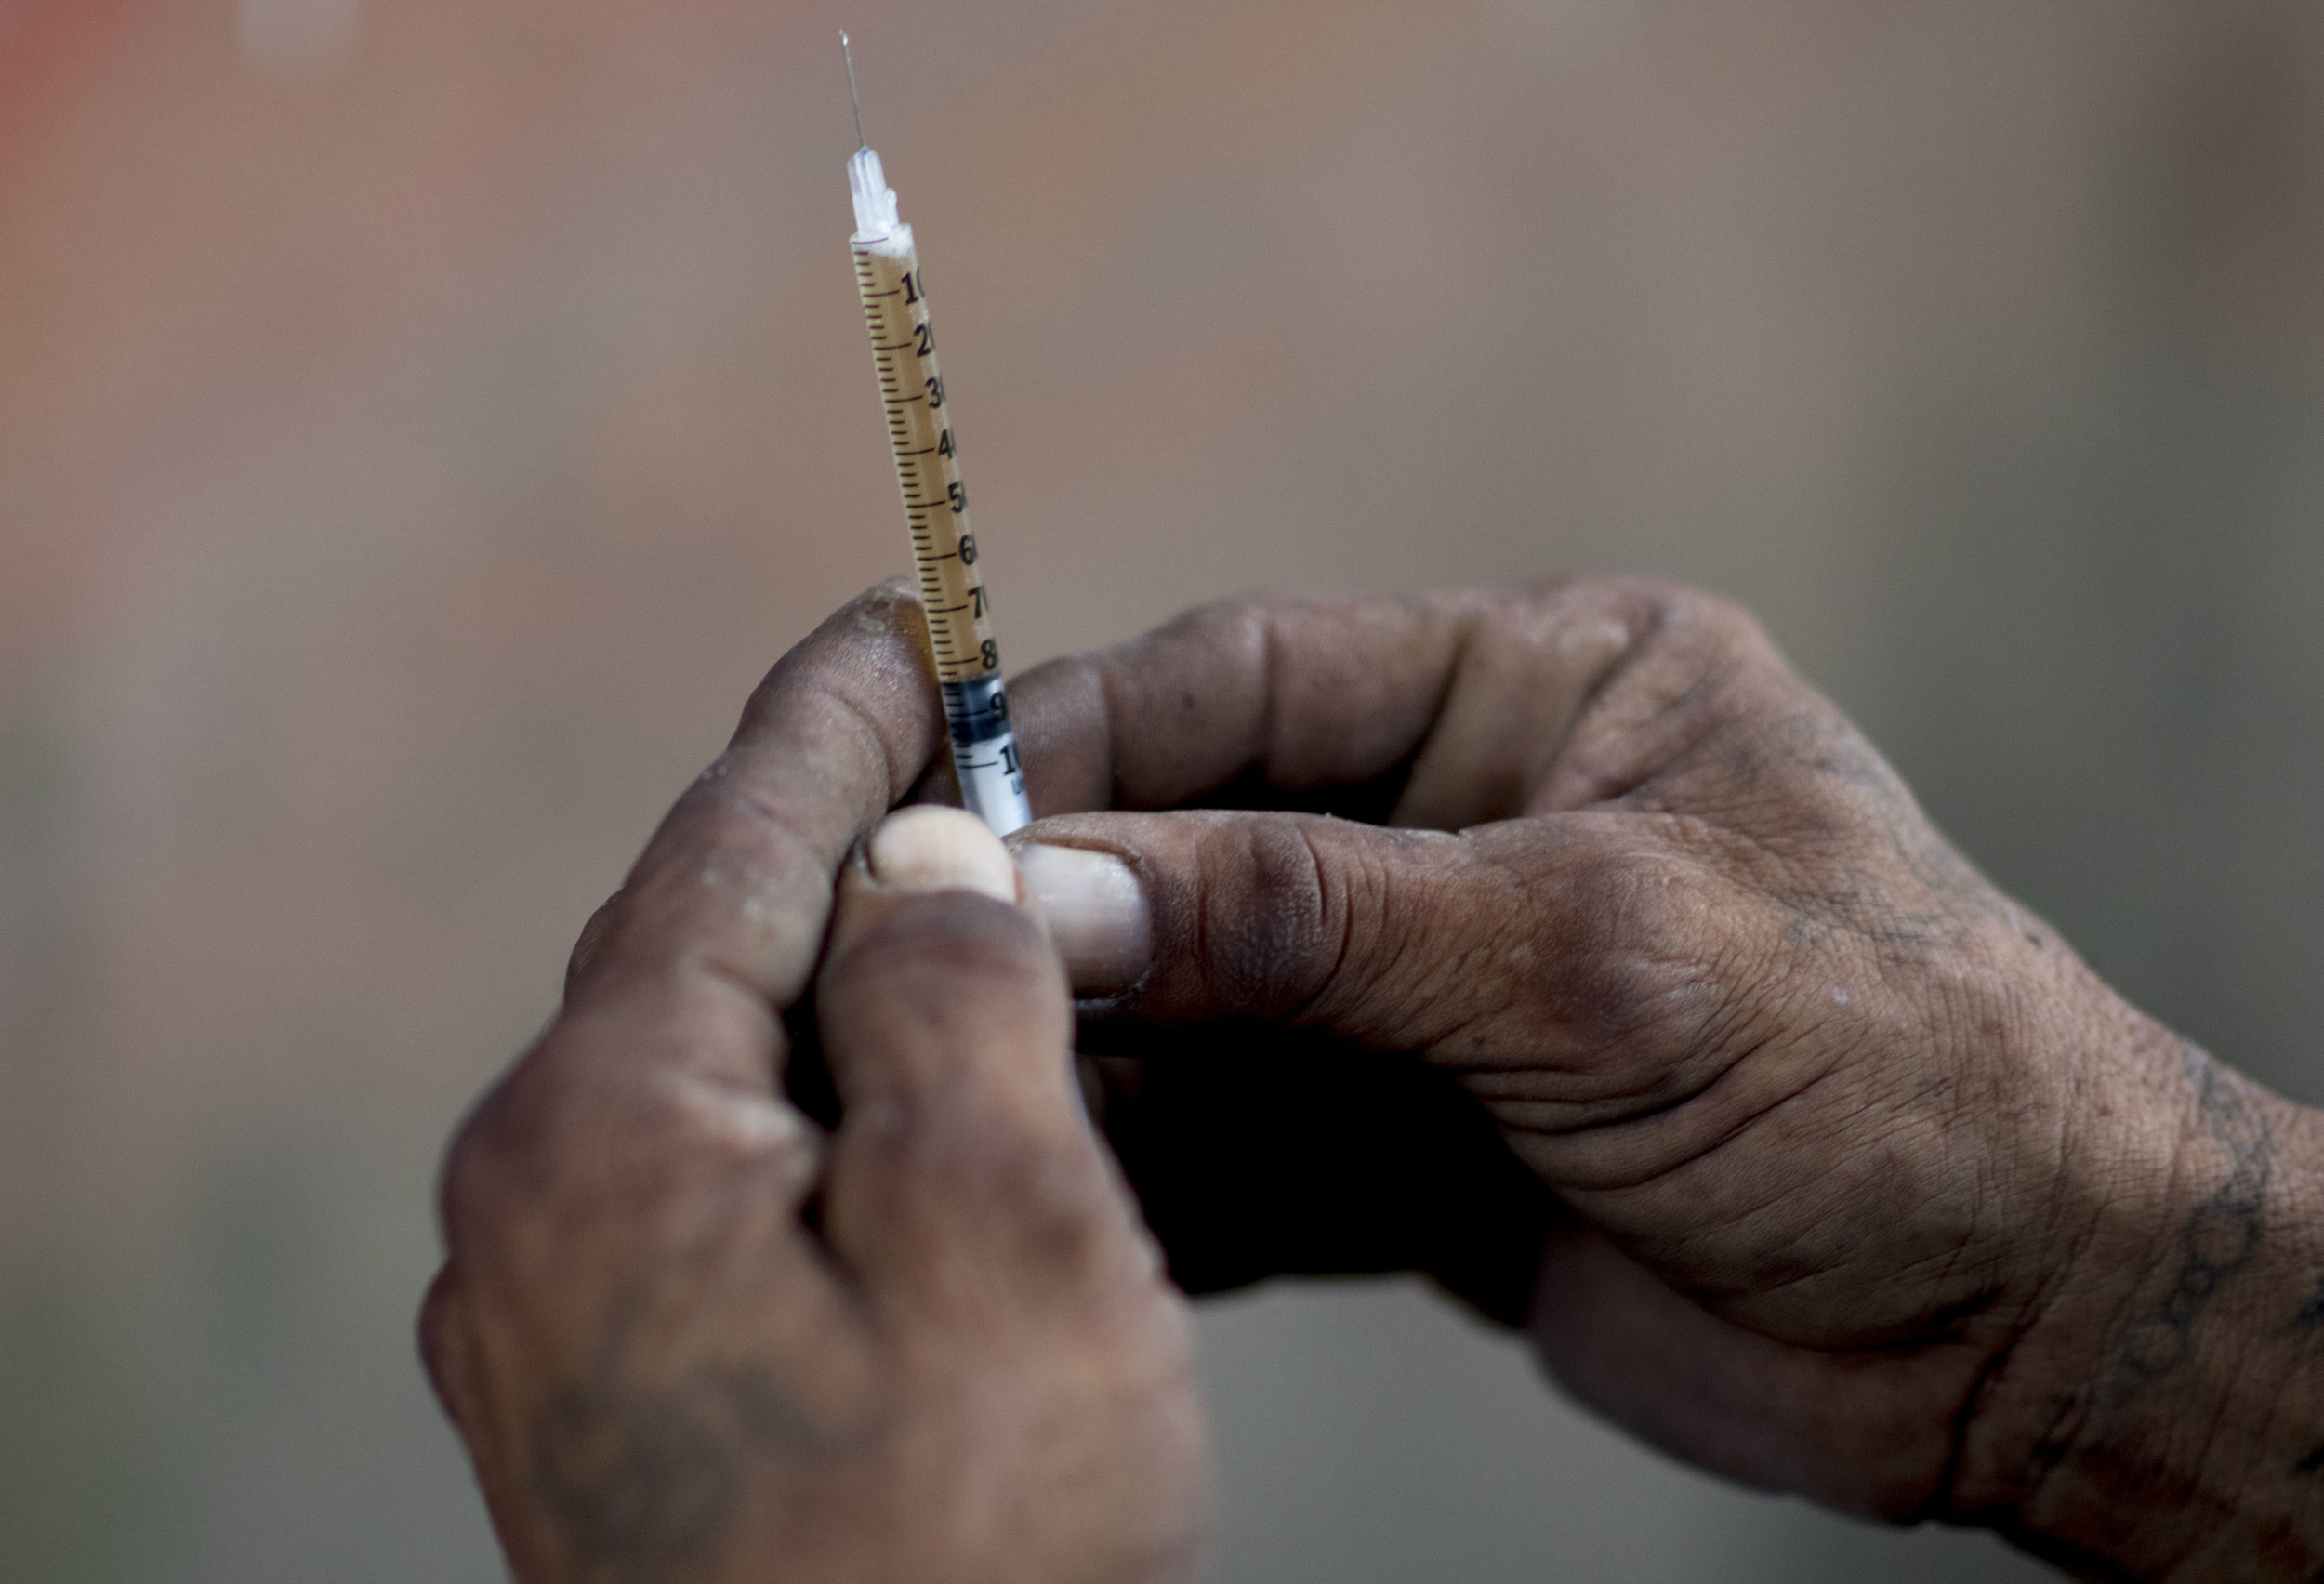 Heroin inside of a needle. (AP Photo/Carlos Giusti)